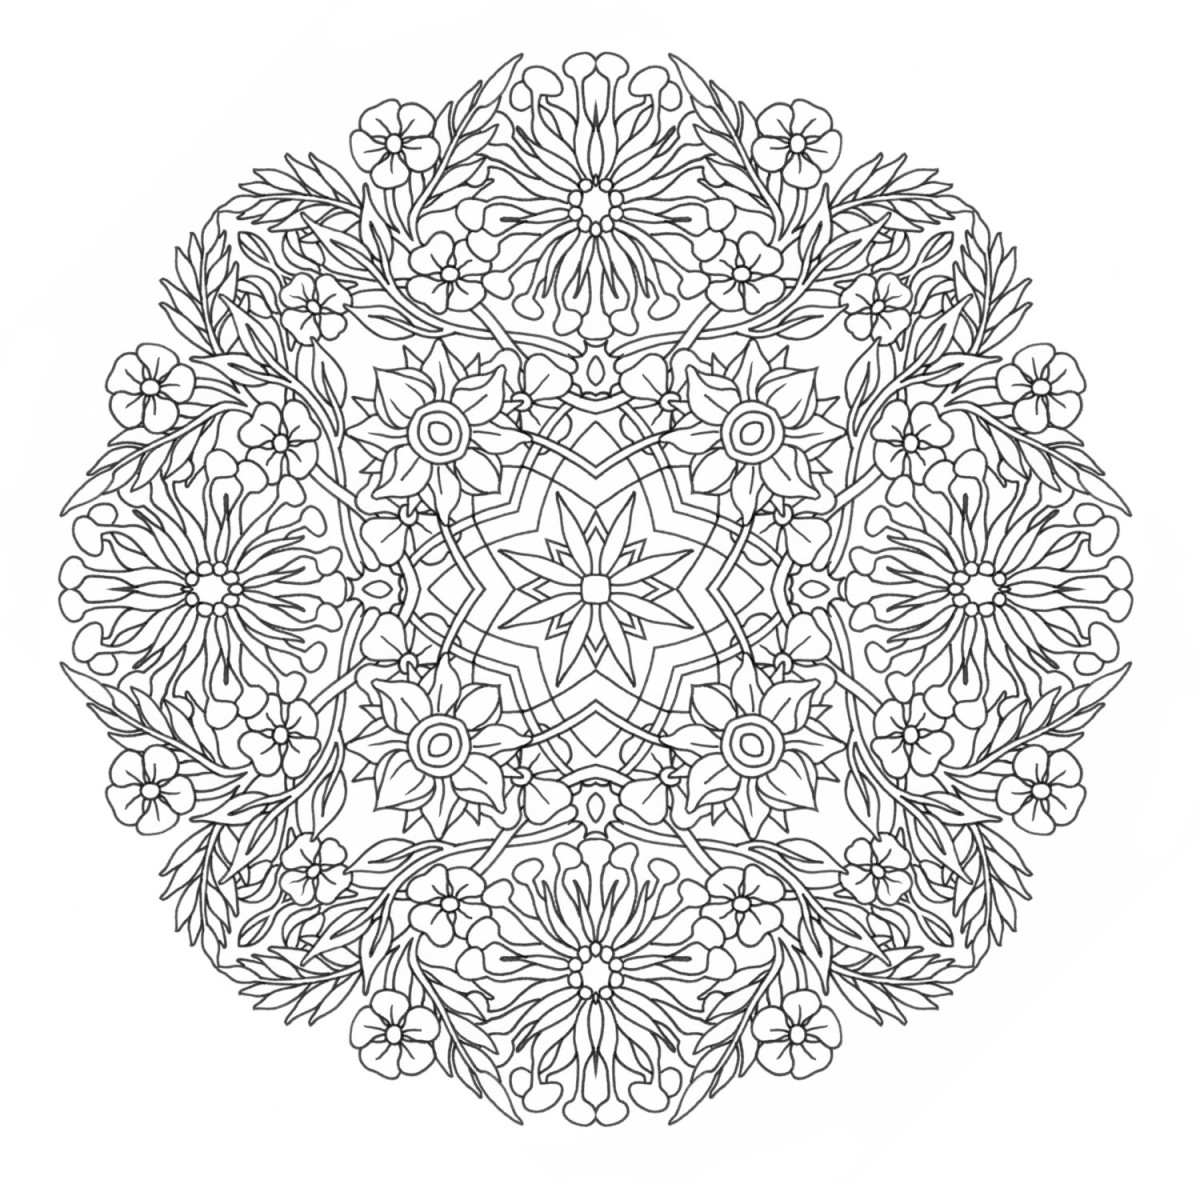 Plicated Colouring Pages to Print Free Download – Free Coloring Sheets